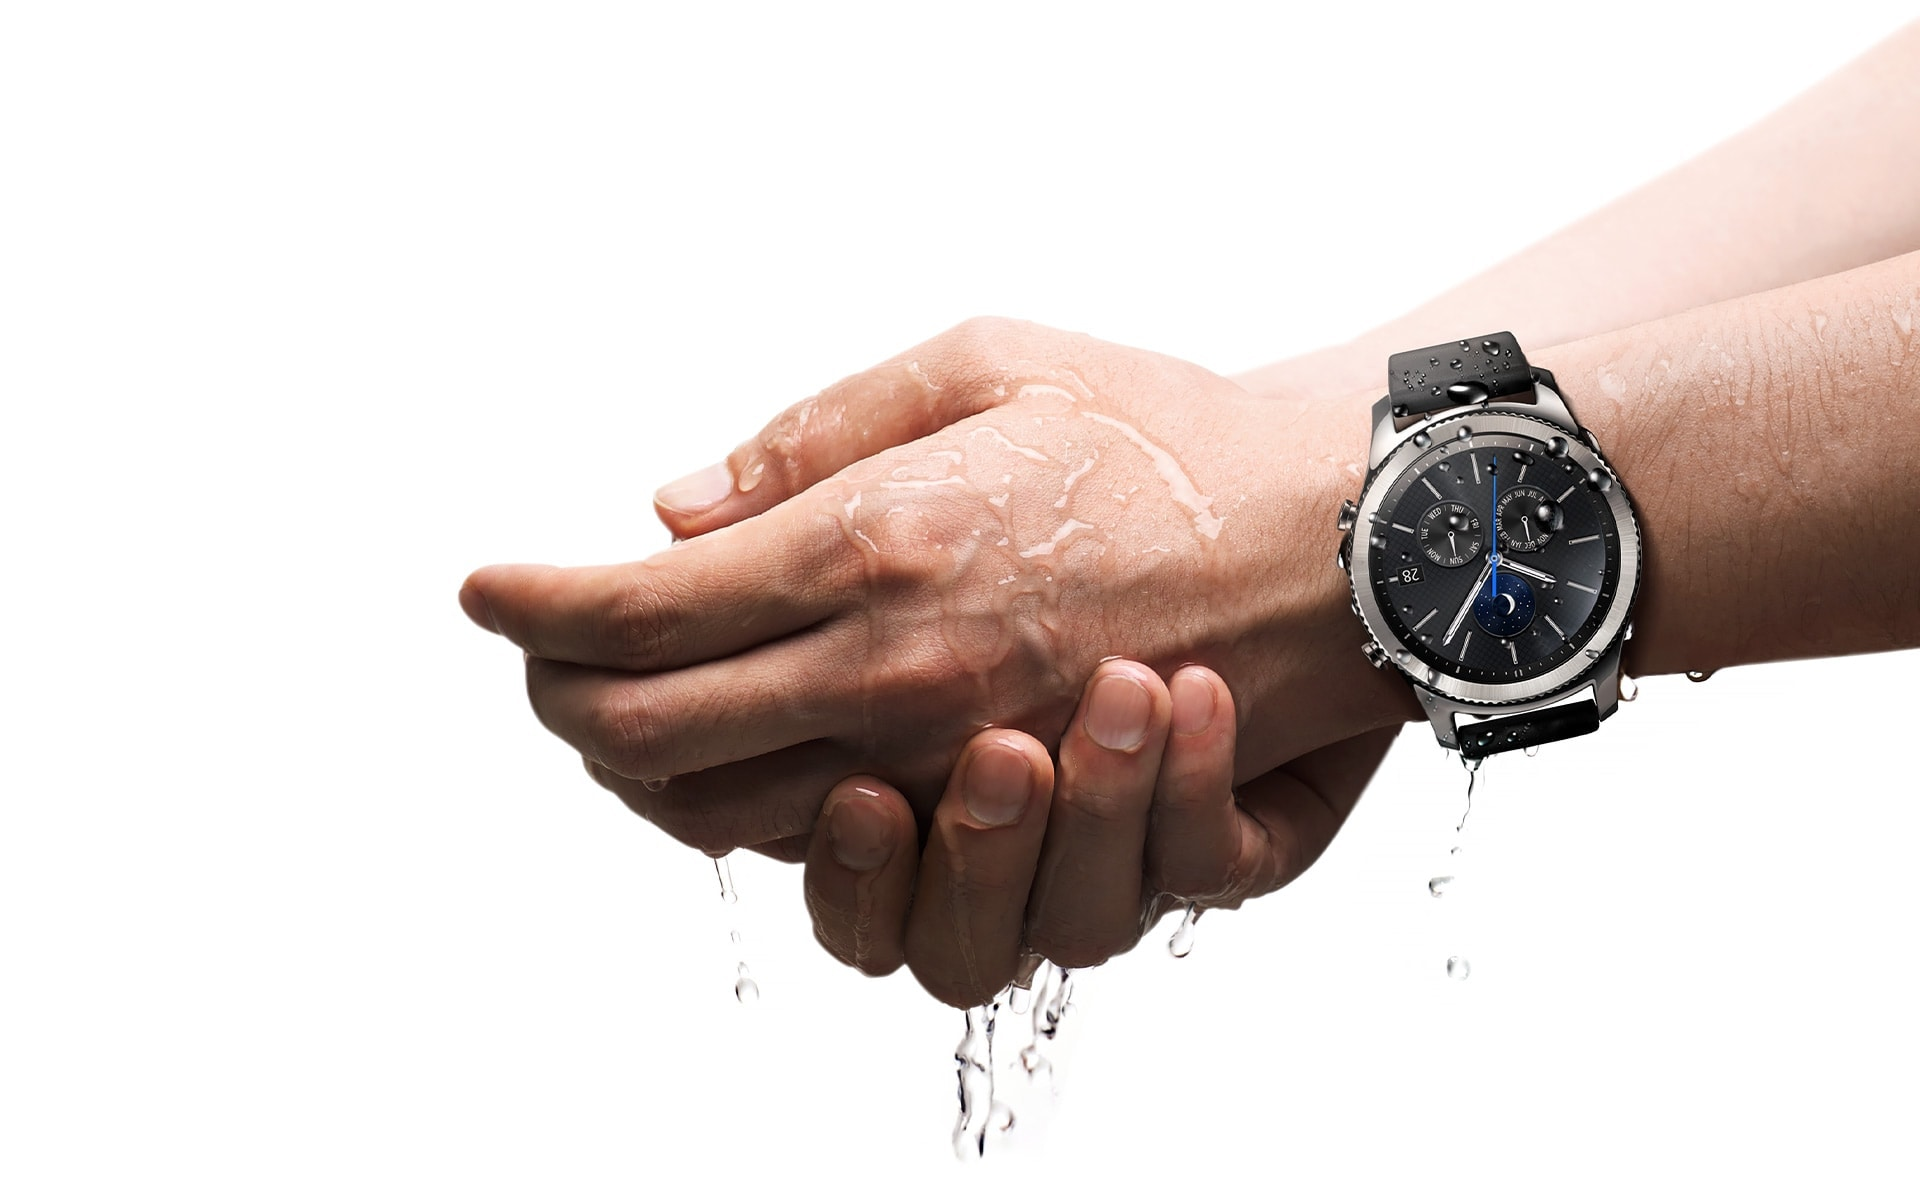 Image of a person washing hands while wearing Gear S3